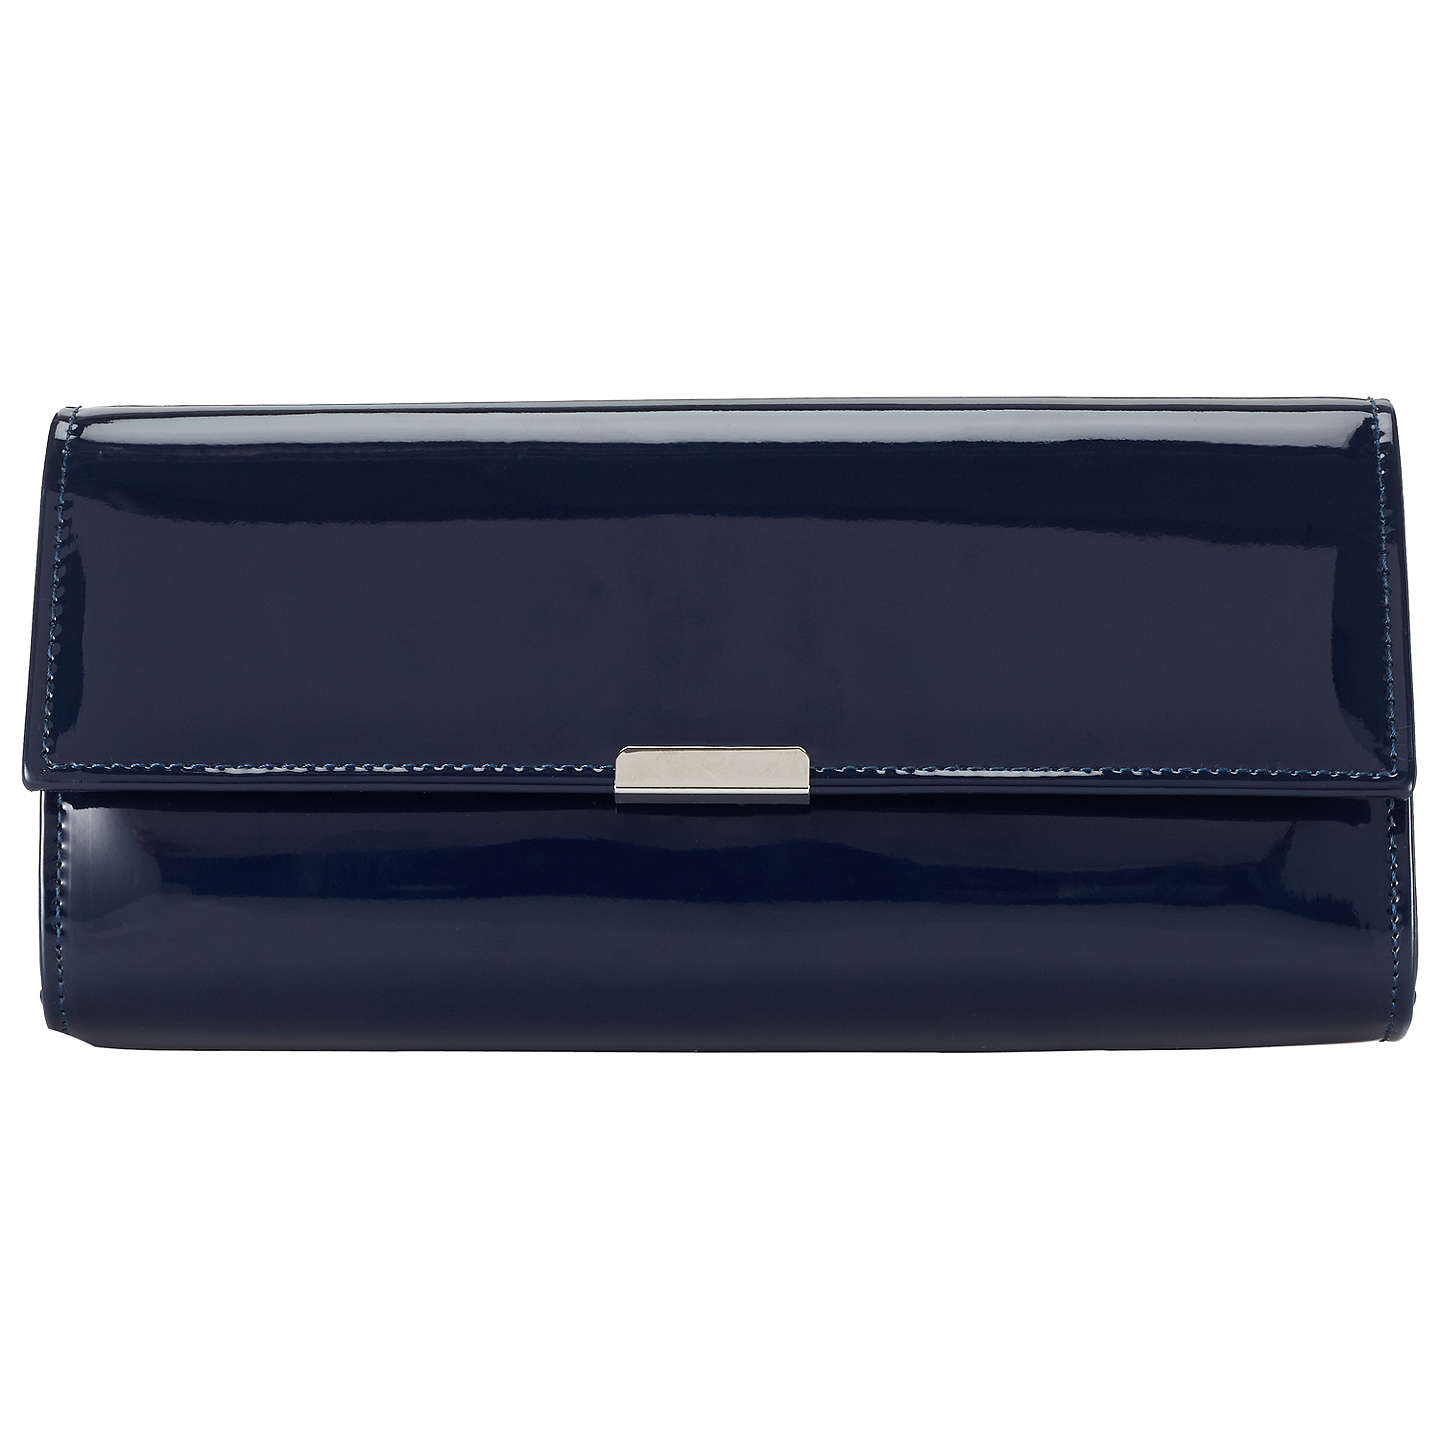 BuyJohn Lewis Patent Bar Clutch Bag, Navy Online at johnlewis.com